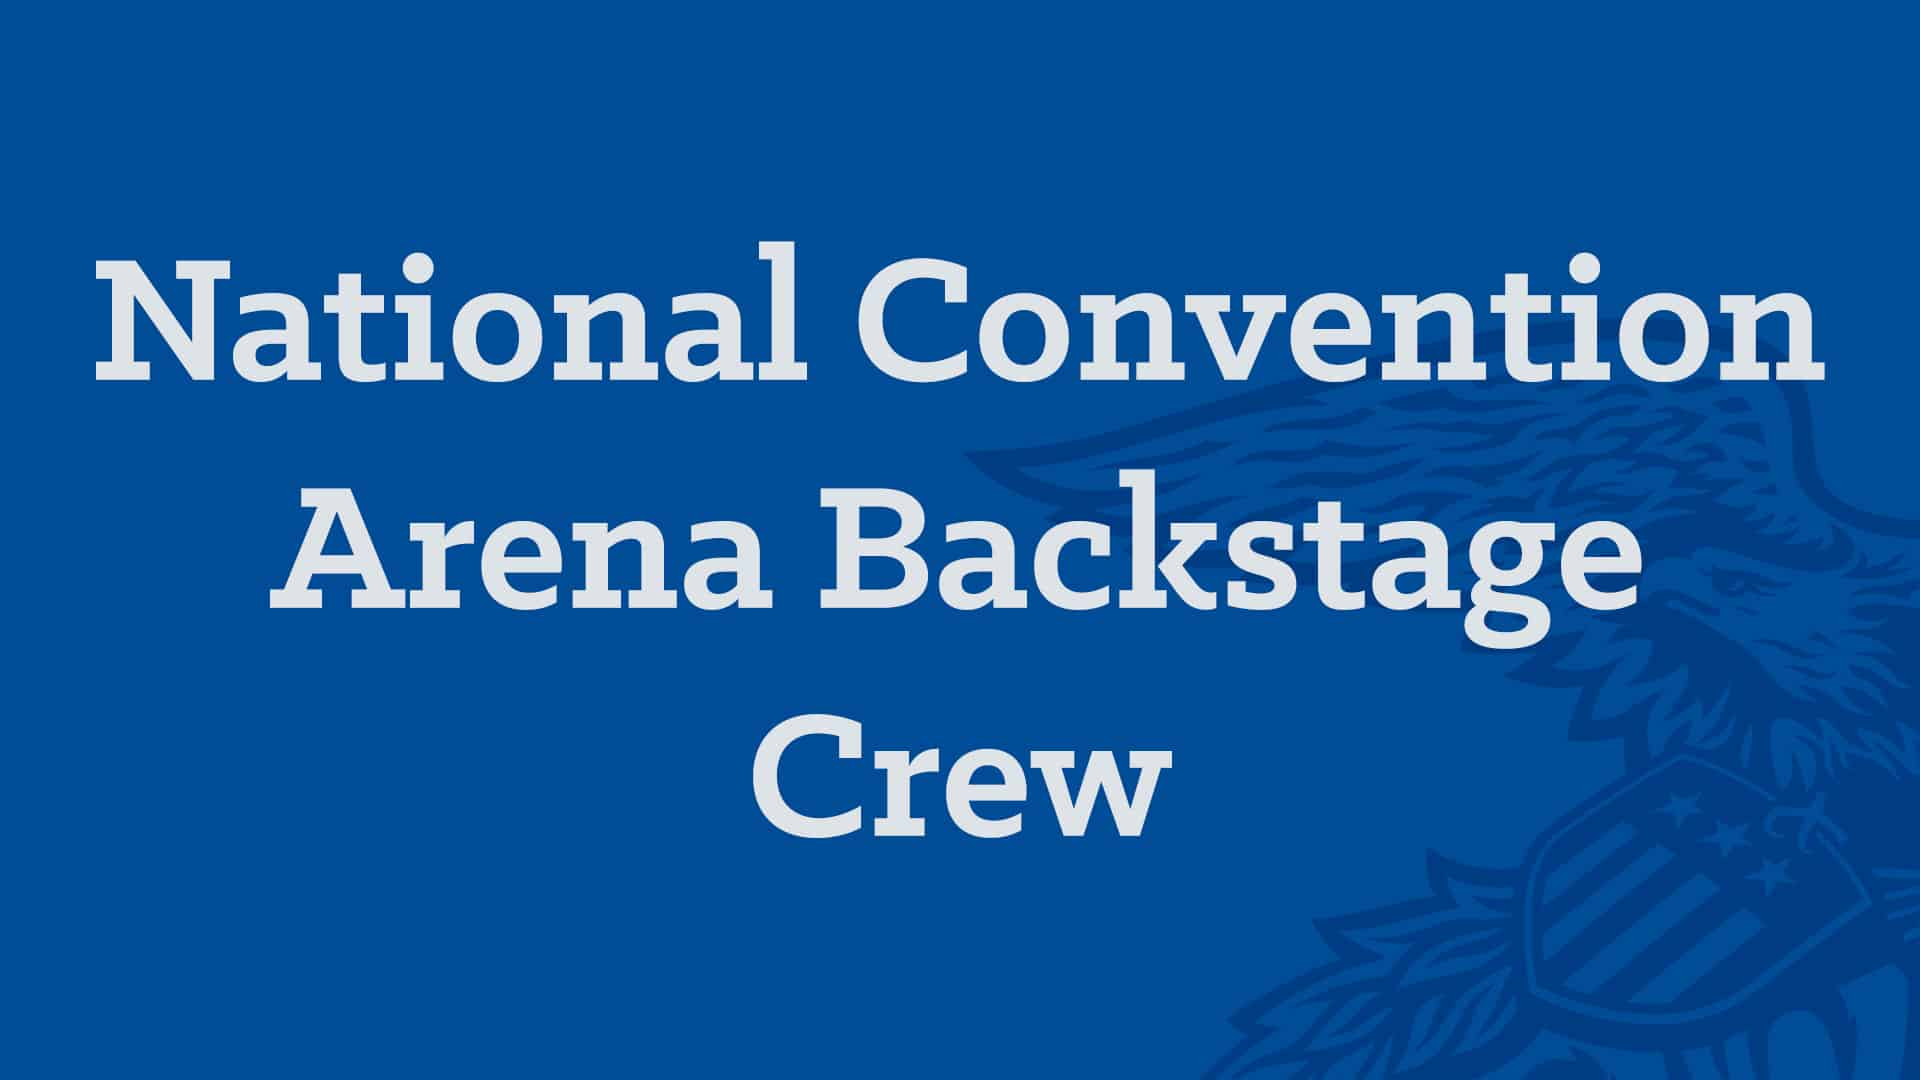 National Convention Arena Backstage Crew Image